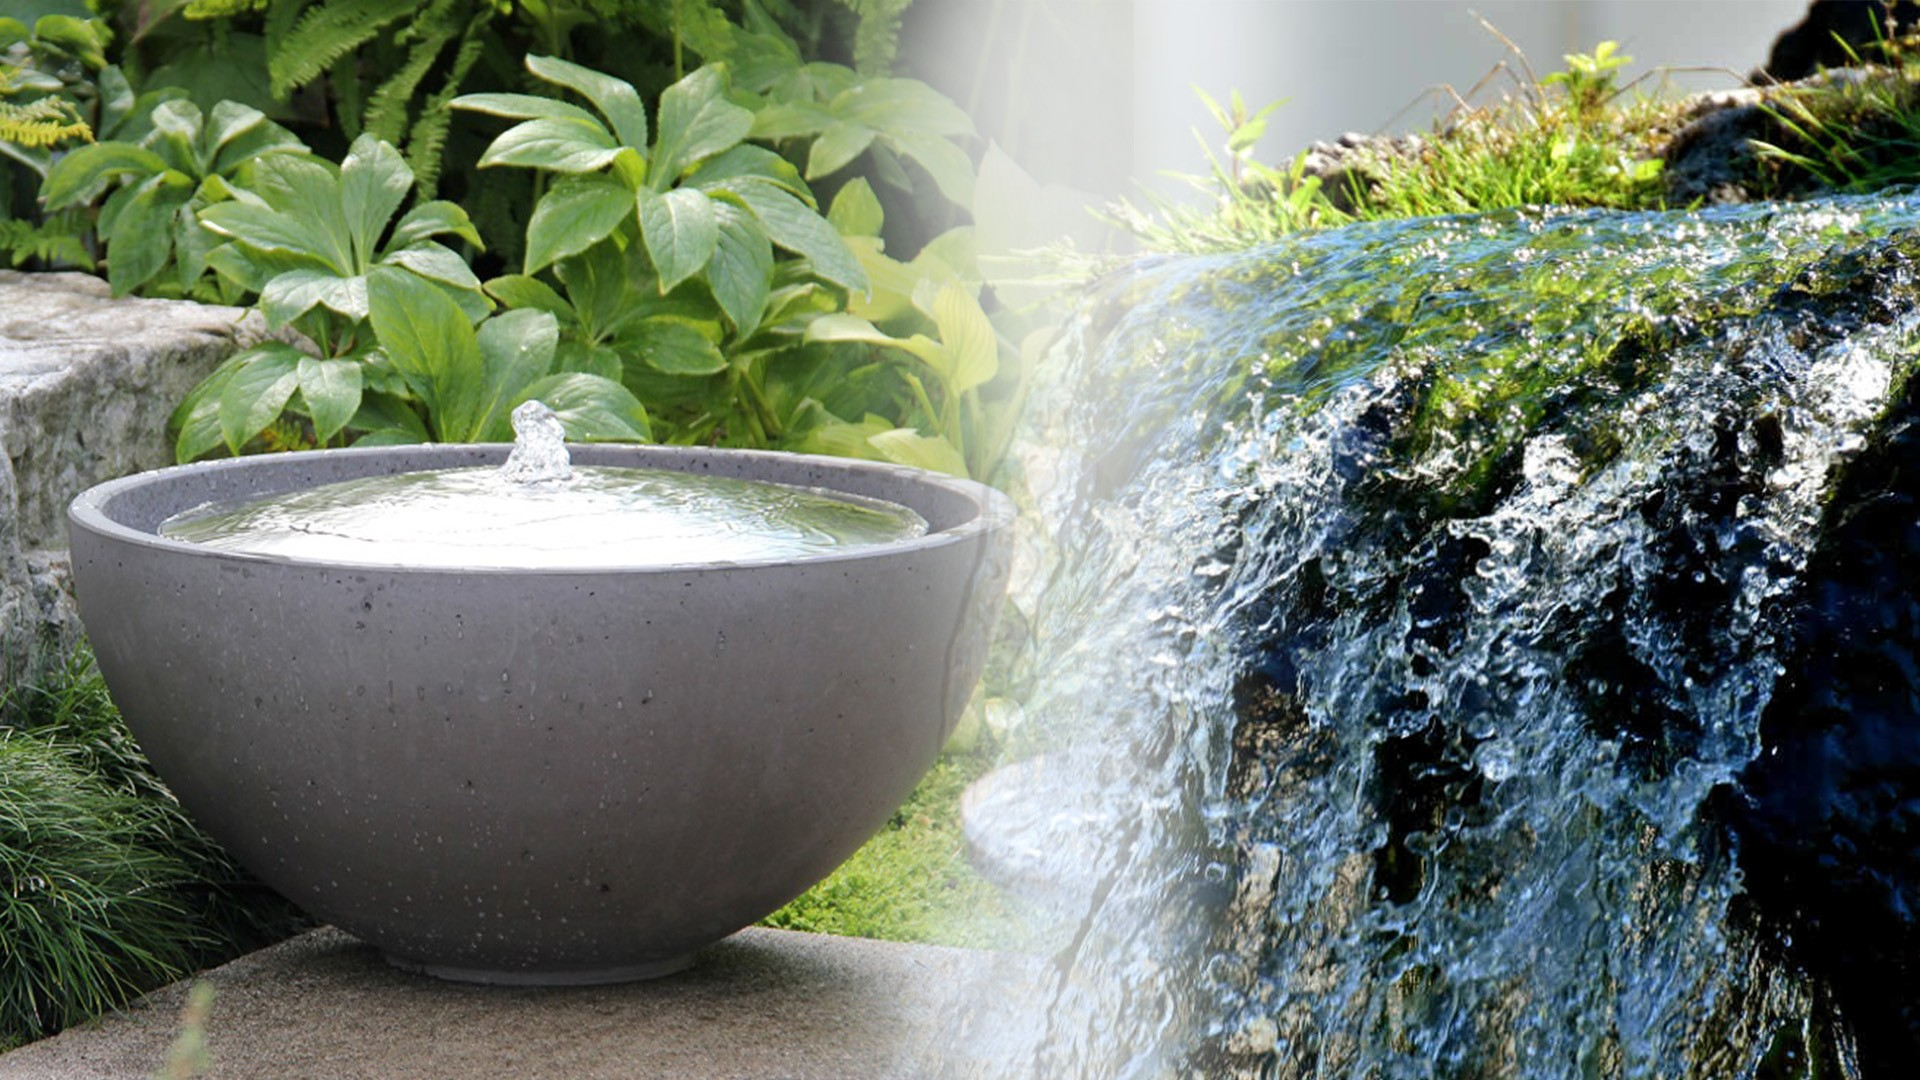 Water Features & Water Falls-Grand Prairie TX Professional Landscapers & Outdoor Living Designs-We offer Landscape Design, Outdoor Patios & Pergolas, Outdoor Living Spaces, Stonescapes, Residential & Commercial Landscaping, Irrigation Installation & Repairs, Drainage Systems, Landscape Lighting, Outdoor Living Spaces, Tree Service, Lawn Service, and more.